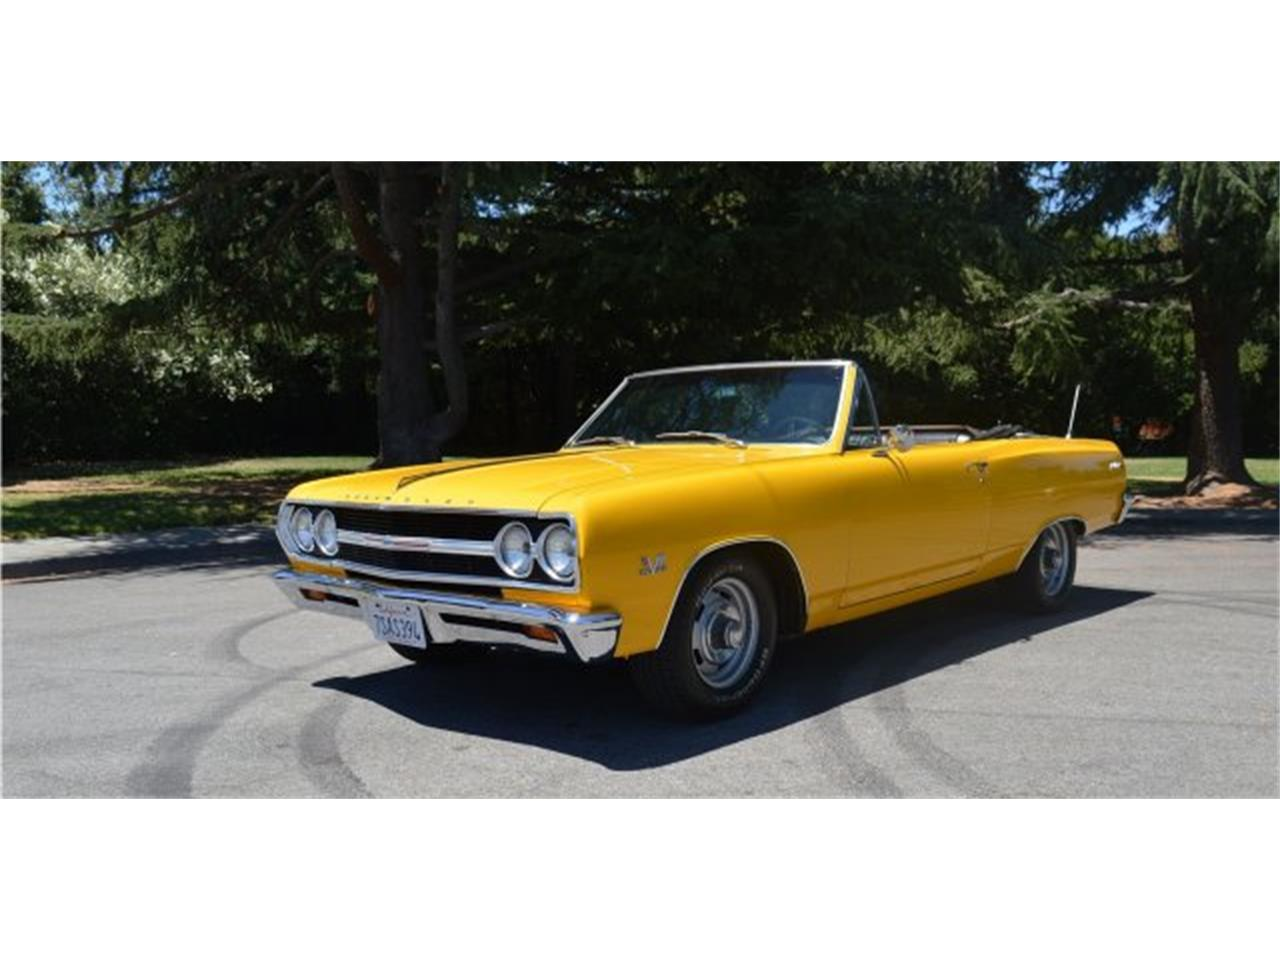 1965 Chevrolet Chevelle Malibu (CC-1207300) for sale in San Jose, California